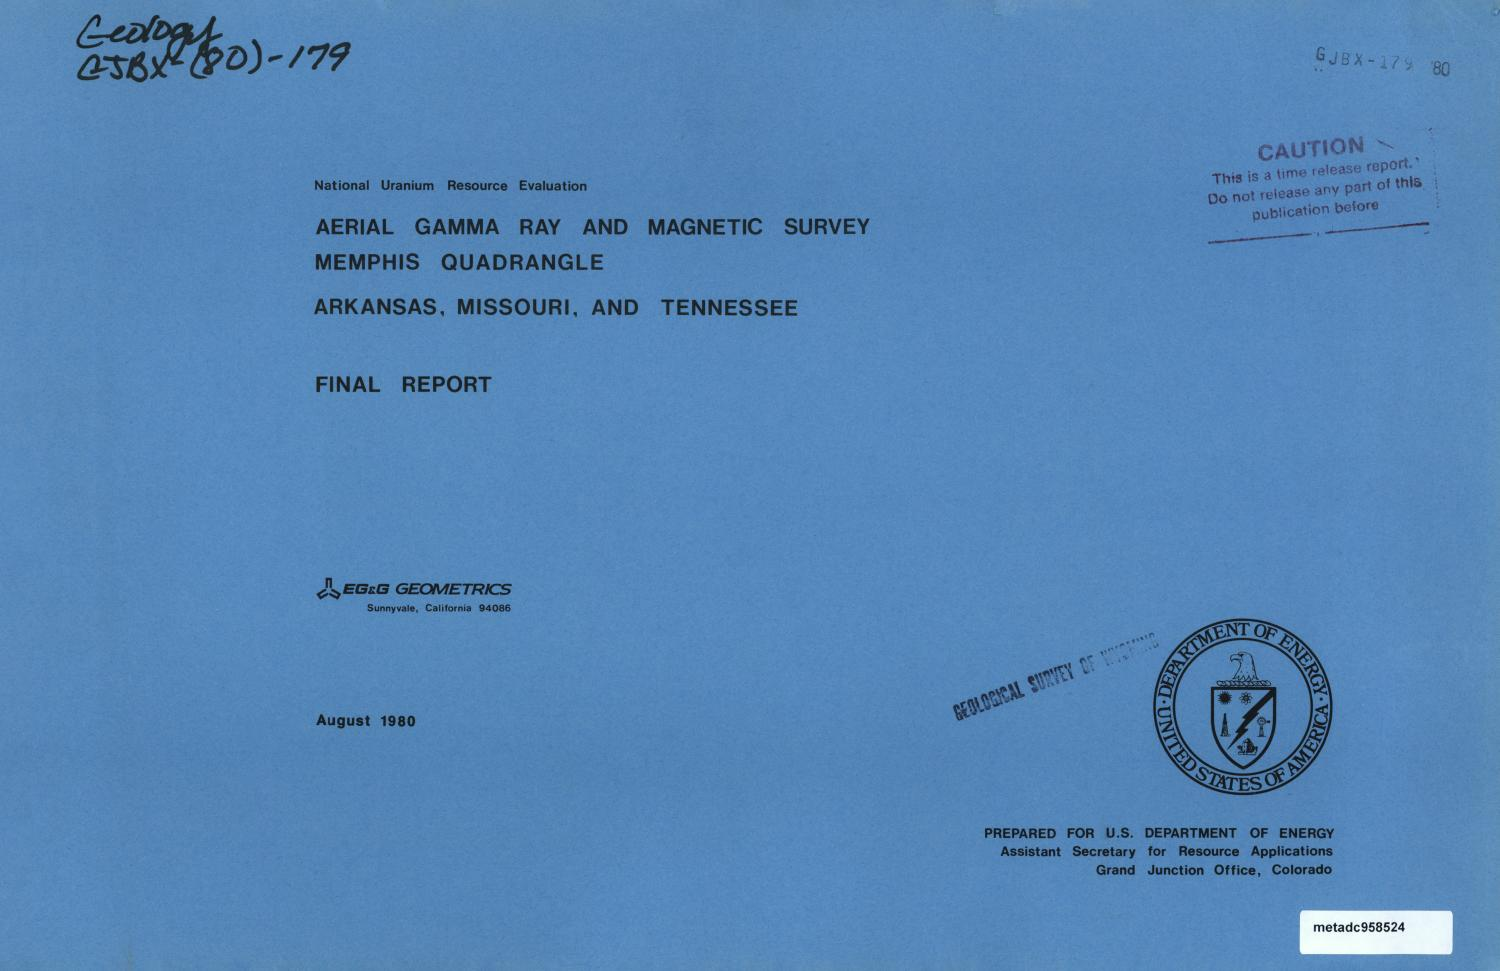 Aerial Gamma Ray and Magnetic Survey, Final Report: Memphis